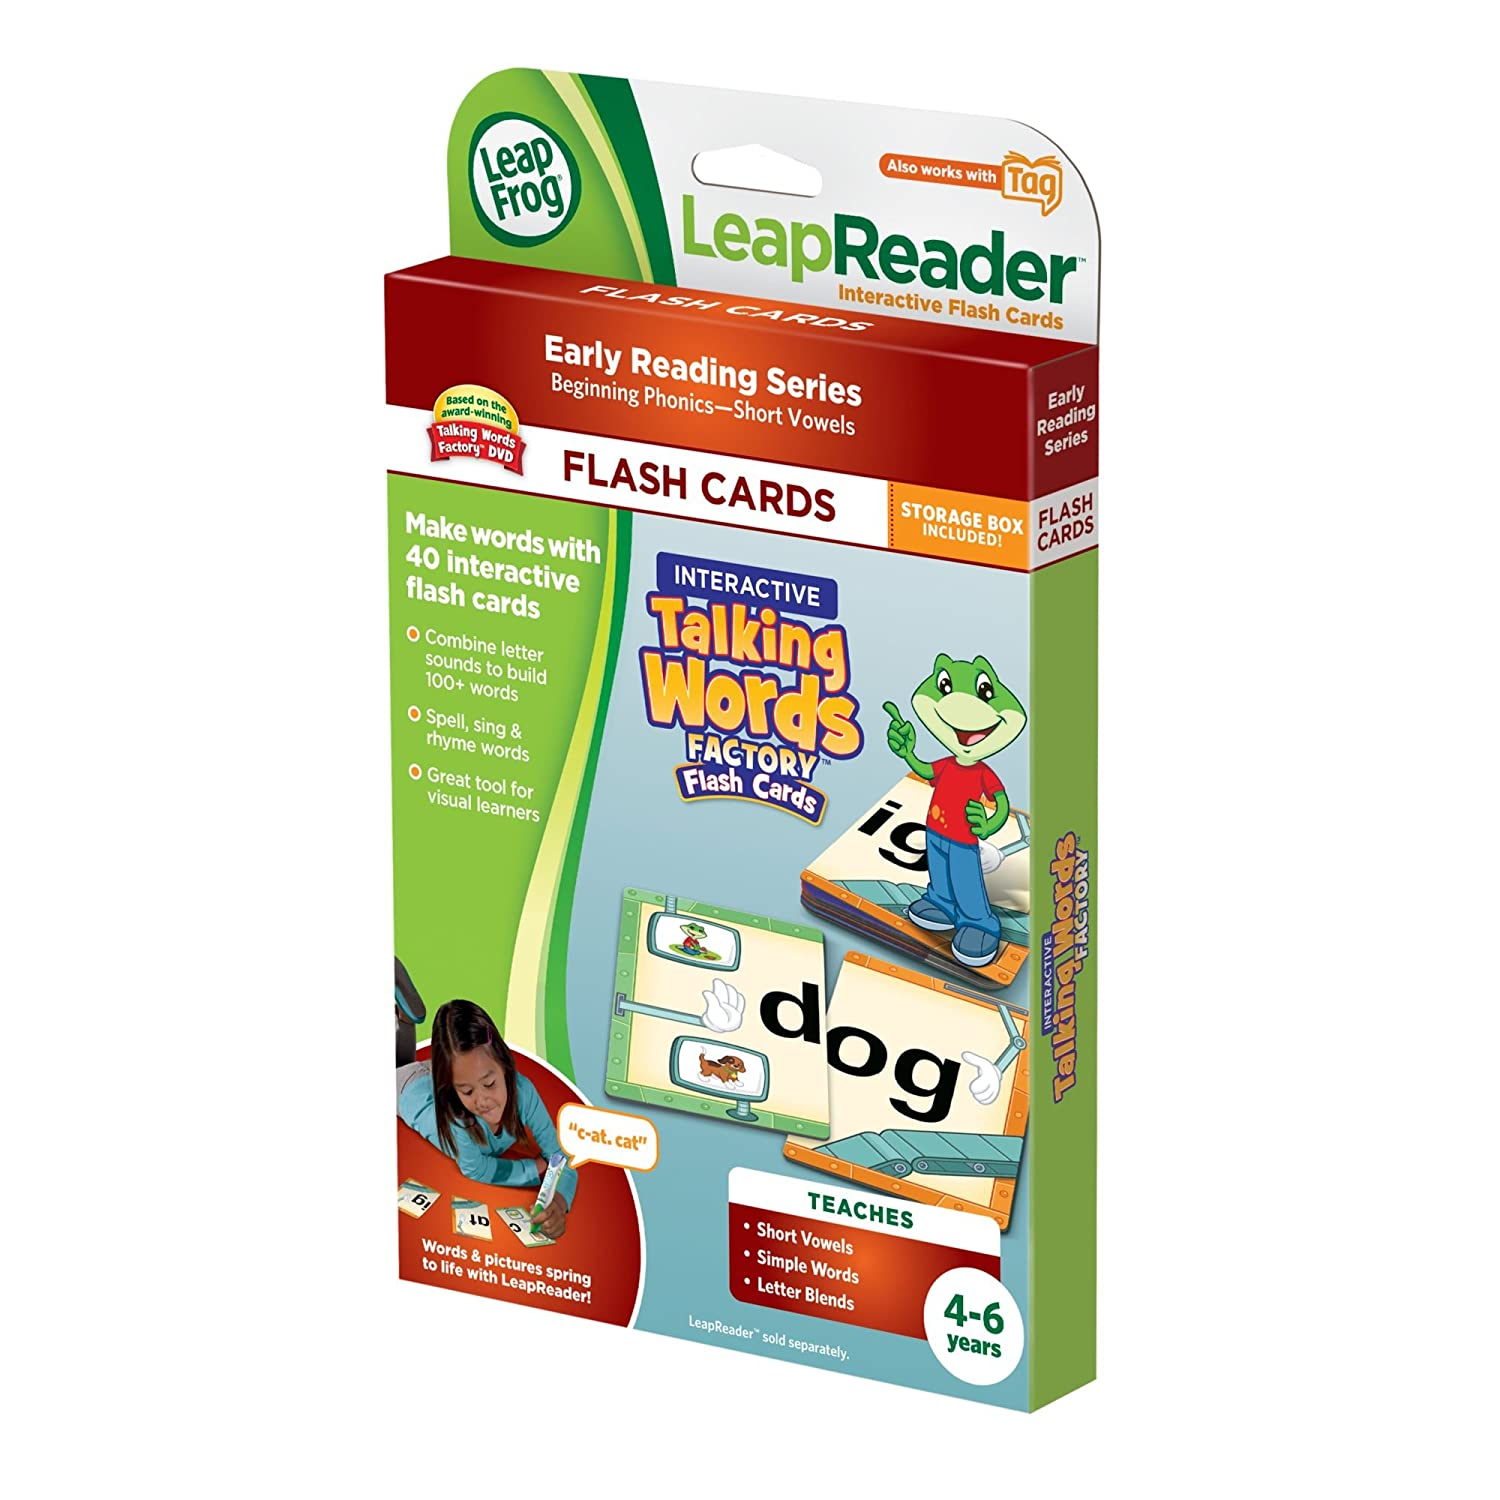 Amazon Leapfrog Leapreader Interactive Talking Words Factory